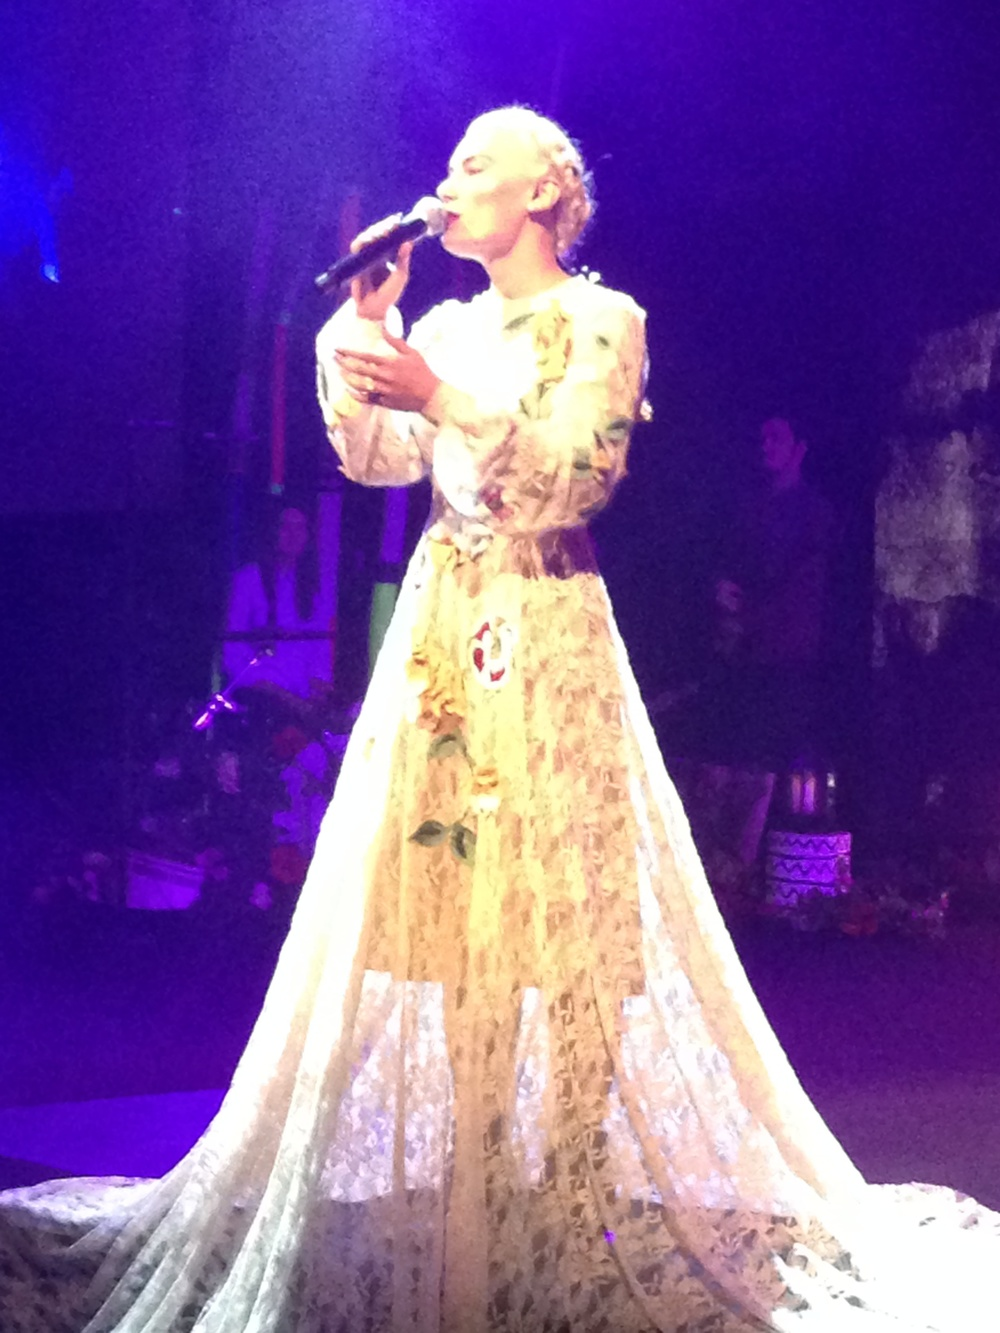 Amy Rose adorned in an elaborate handcrafted gown custom designed by Jacinta Warner